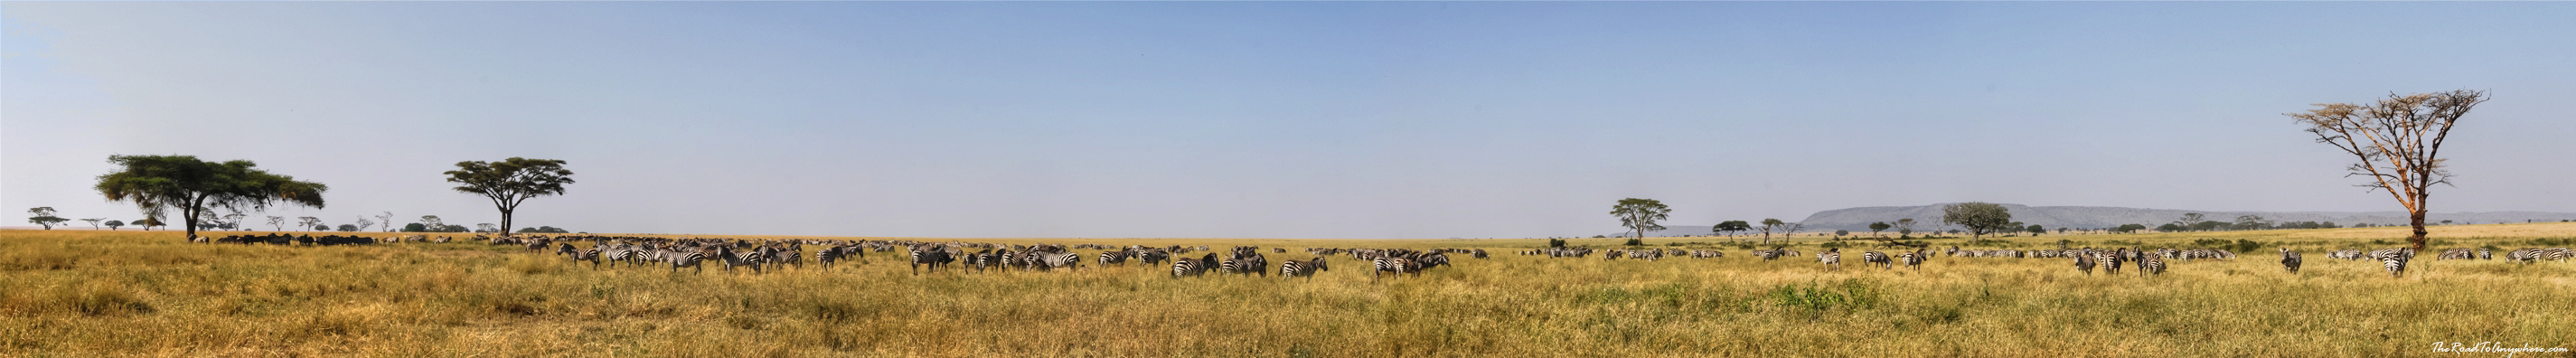 Panorama of a zebra herd in Serengeti National Park, Tanzania